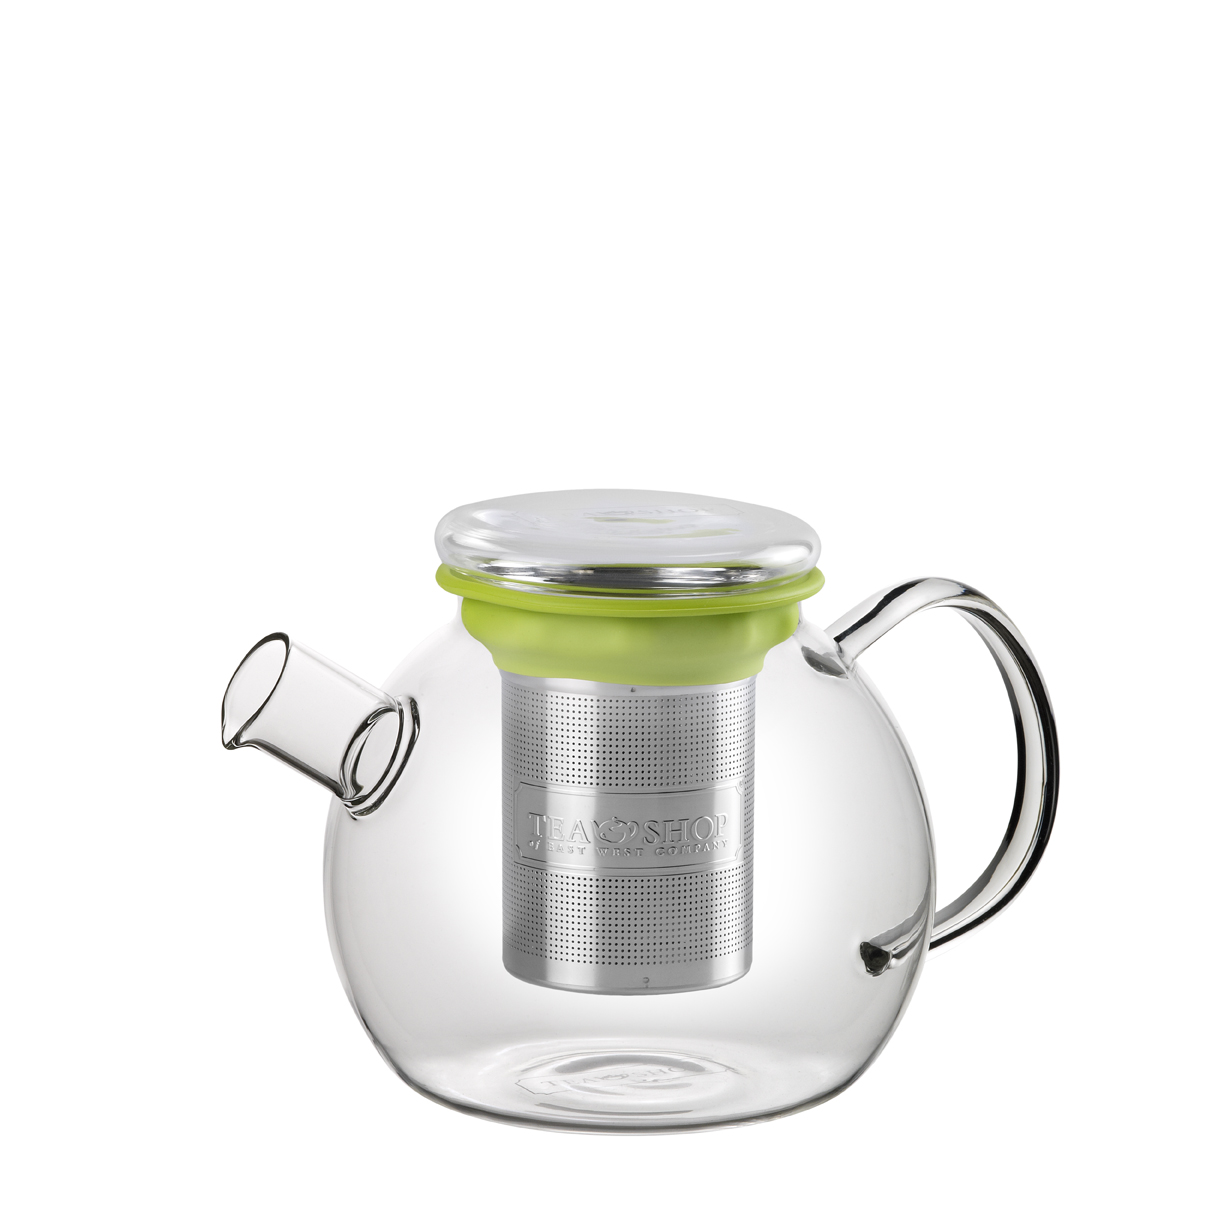 Tetera de Cristal All In One Teapot Blue 1L - Tea Shop